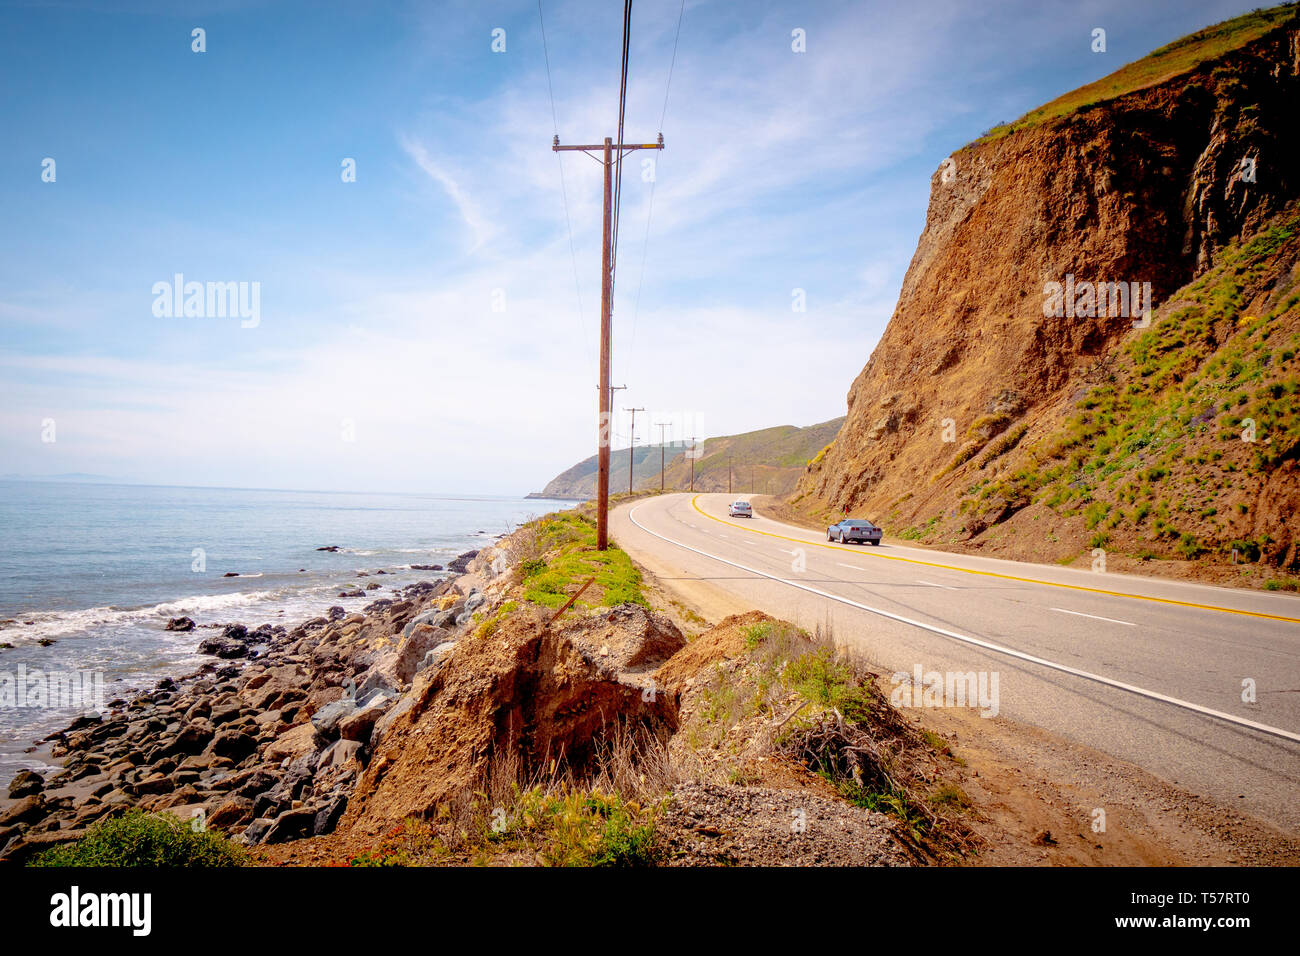 Driving on the PCH Pacific Coast Highway - MALIBU, USA - MARCH 29